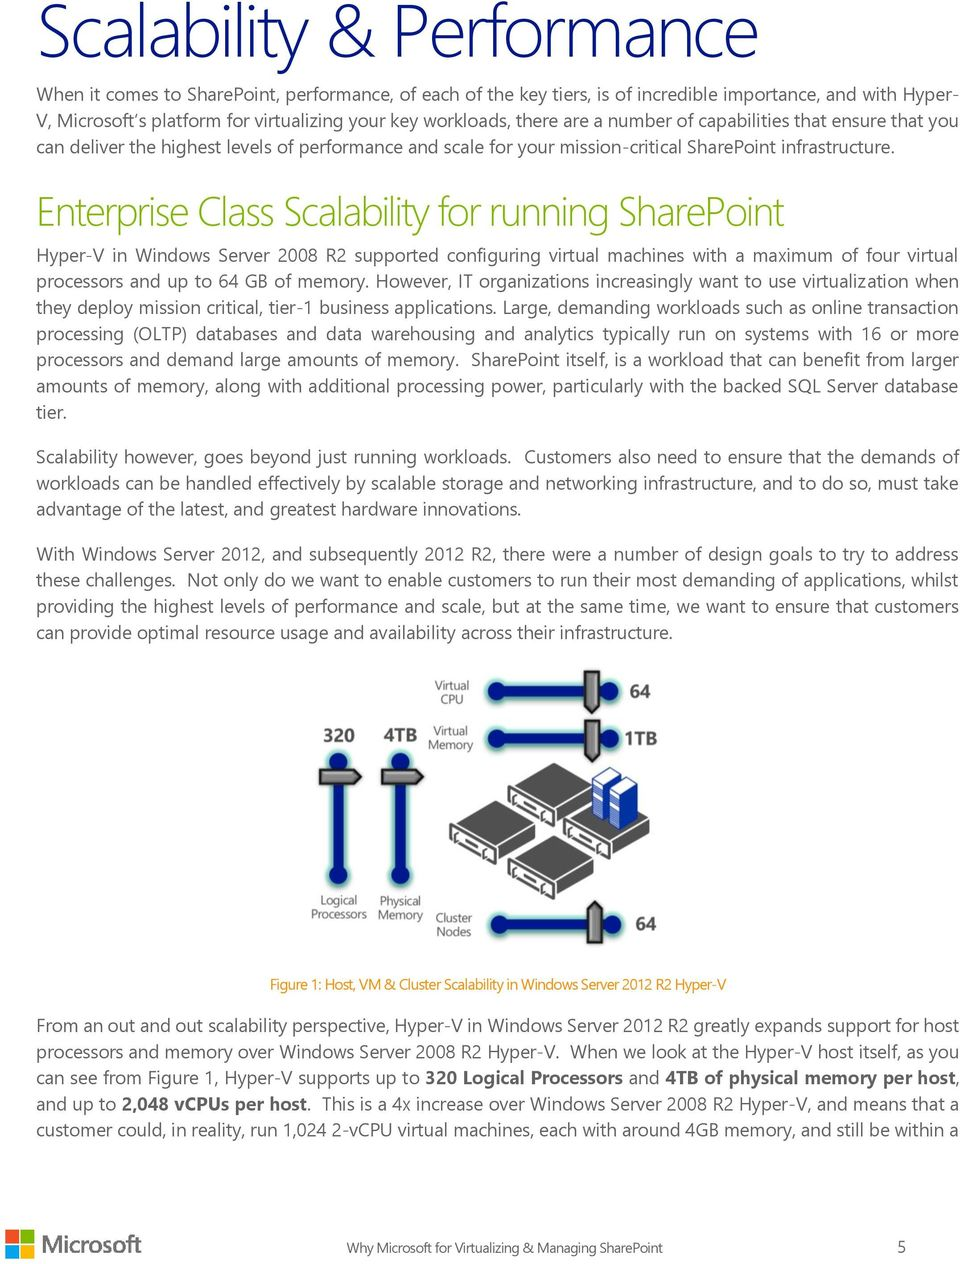 Enterprise Class Scalability for running SharePoint Hyper-V in Windows Server 2008 R2 supported configuring virtual machines with a maximum of four virtual processors and up to 64 GB of memory.